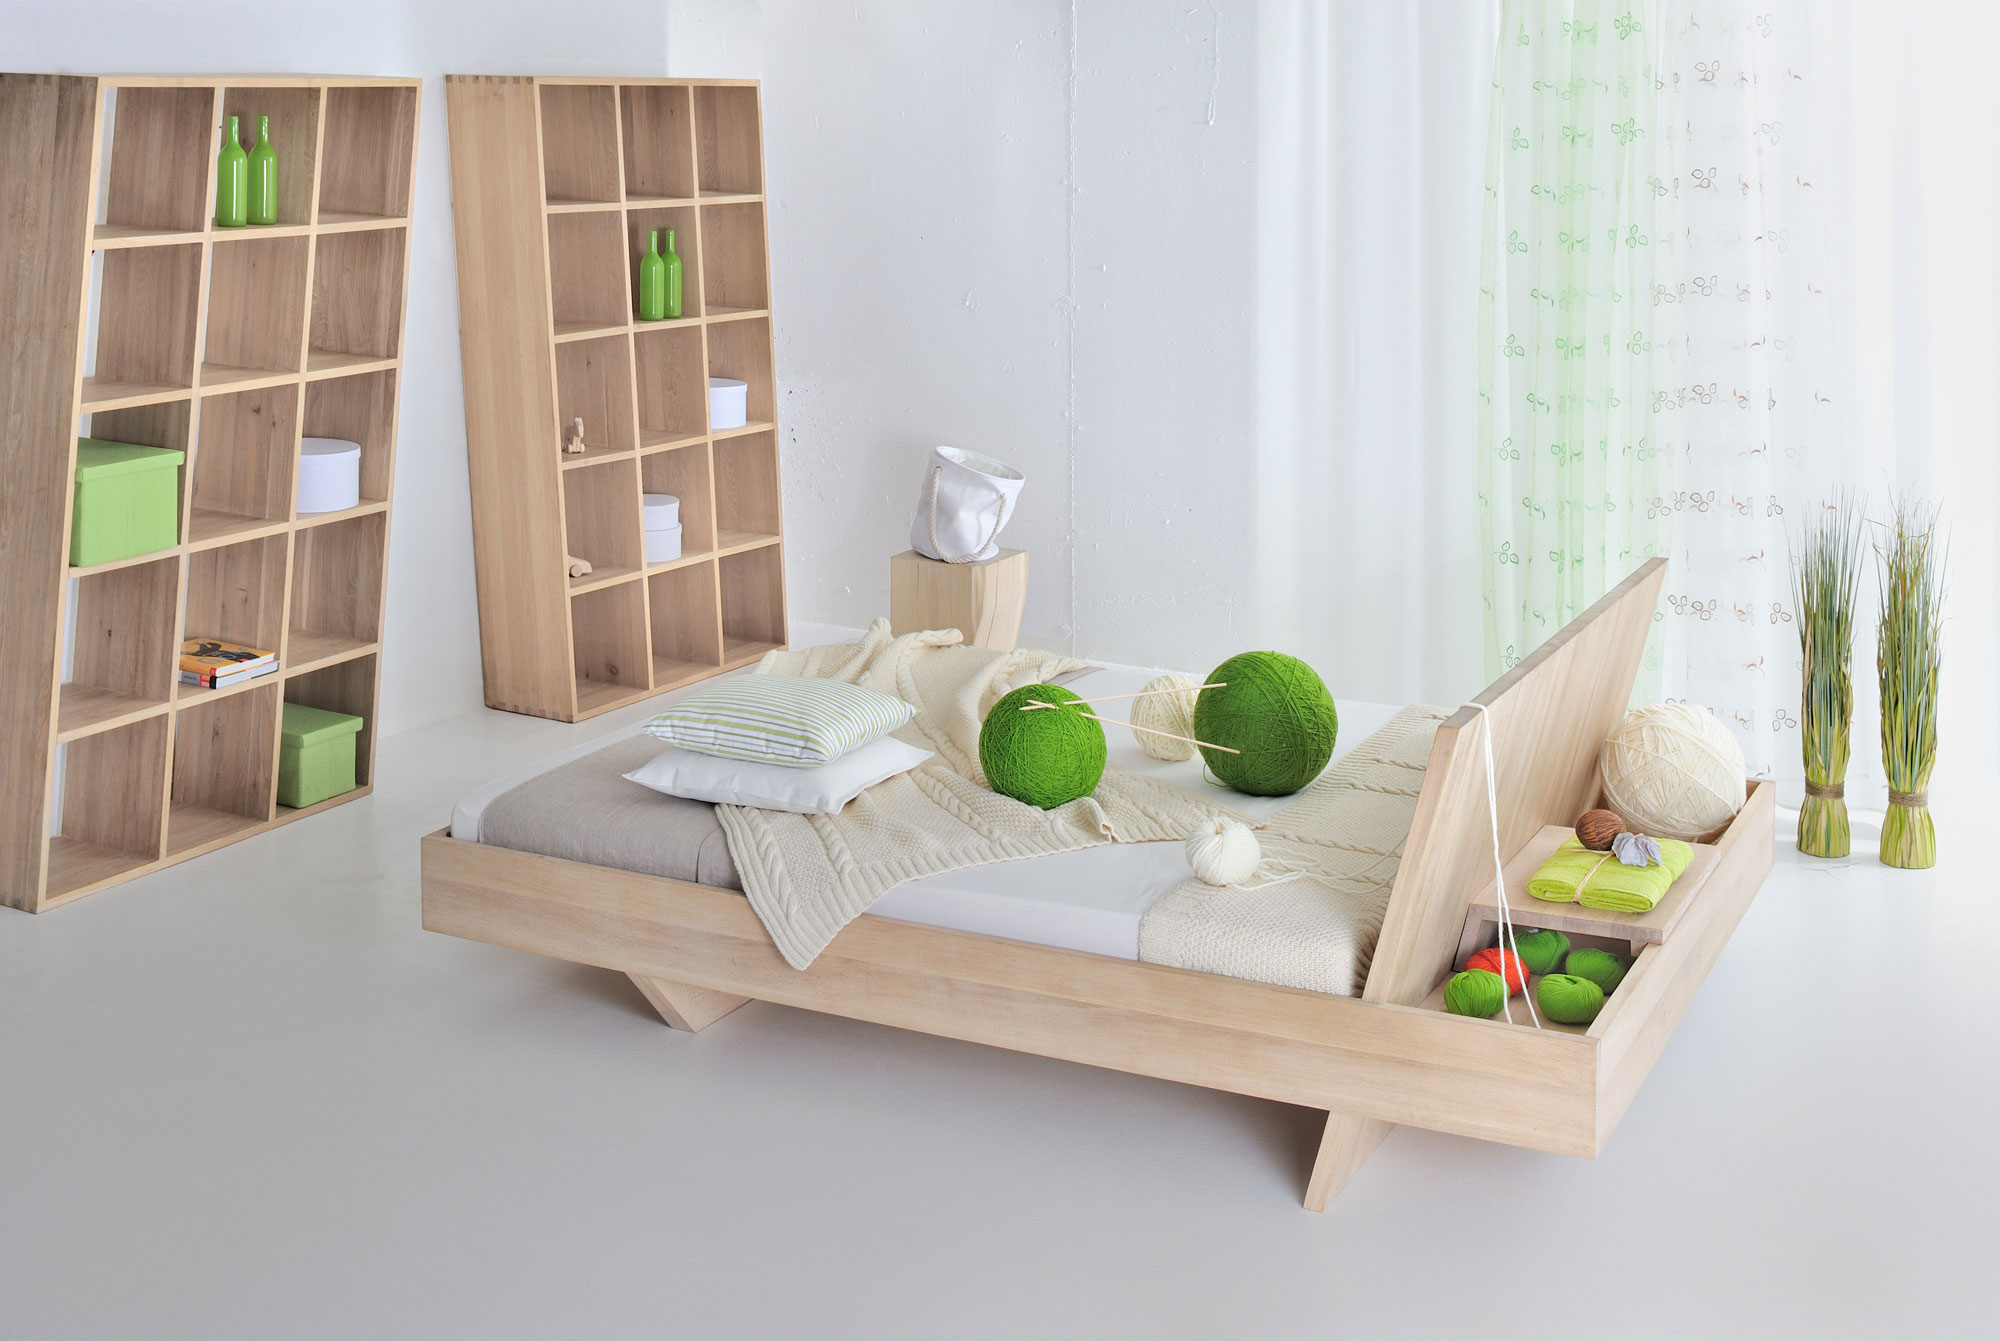 Design Solid Wood Bed SOMNIA 3551 custom made in solid wood by vitamin design